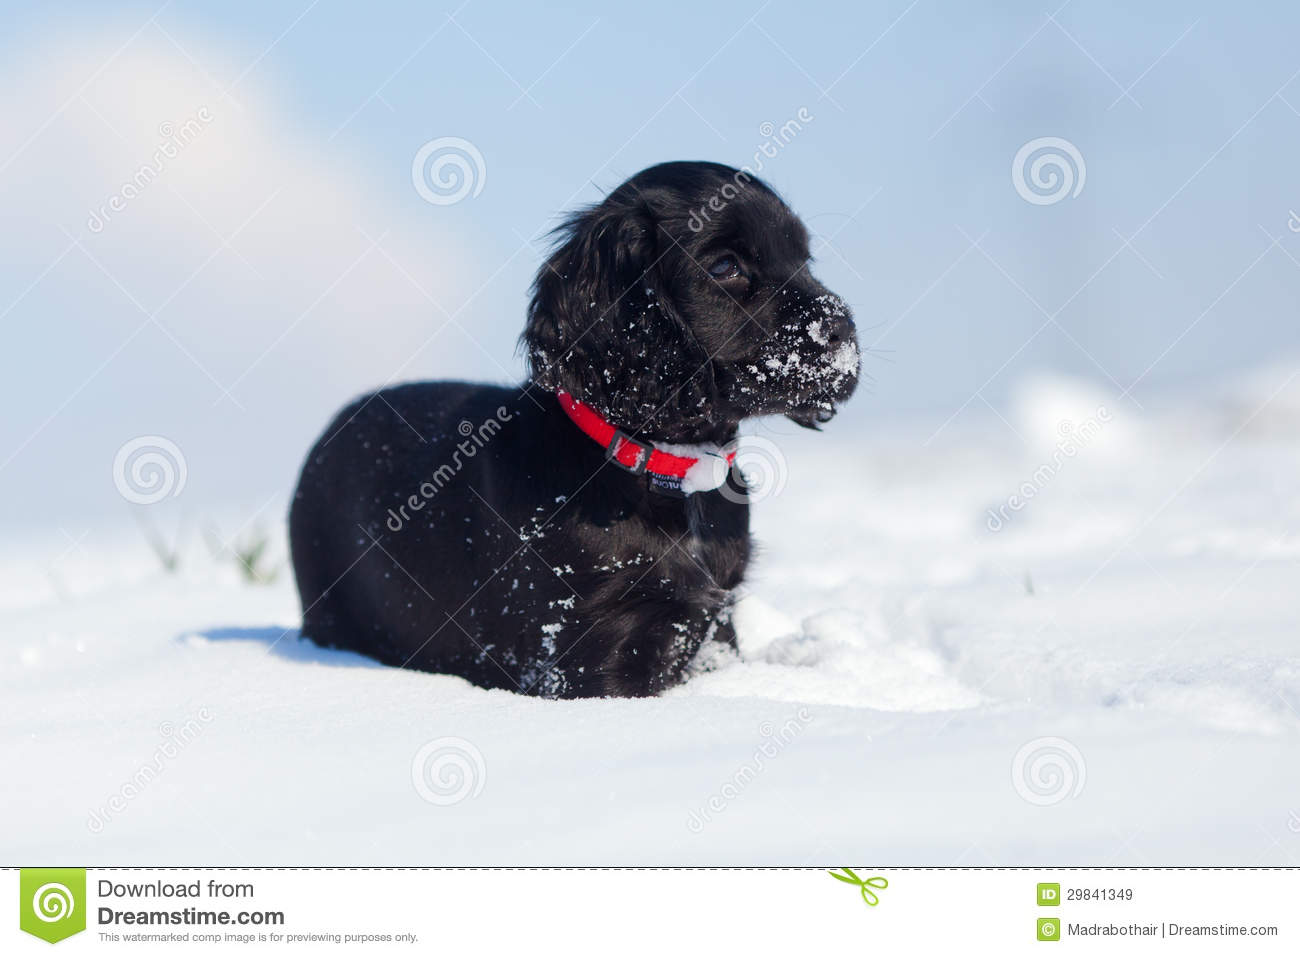 Cute Cocker Spaniel Puppy In The Snow Stock Image Image Of Snowflakes Space 29841349